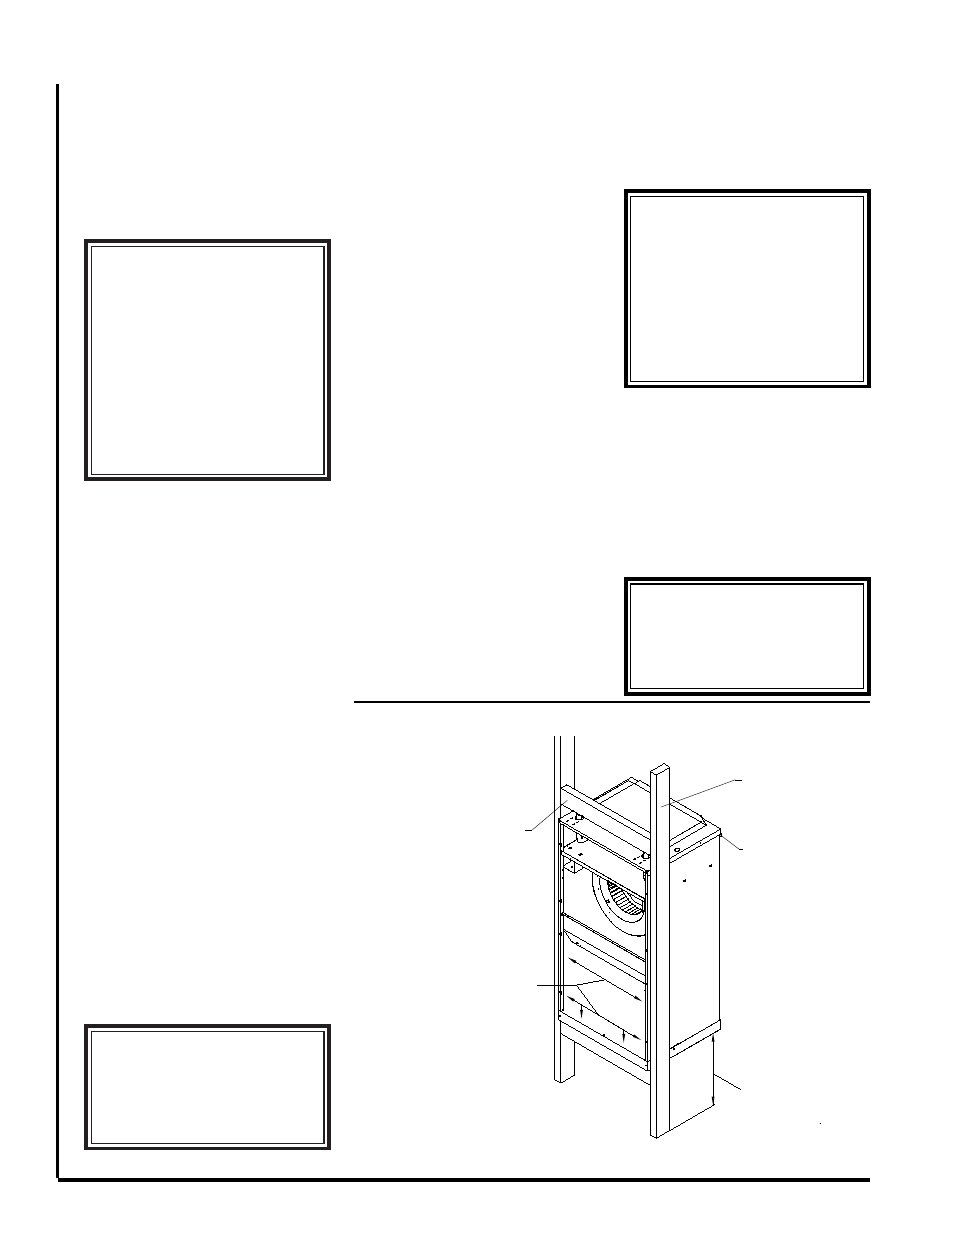 Warning Uc Hw Recessed Wall Mounting First Co Without Wiring Diagrams Installed Pump User Manual Page 2 6